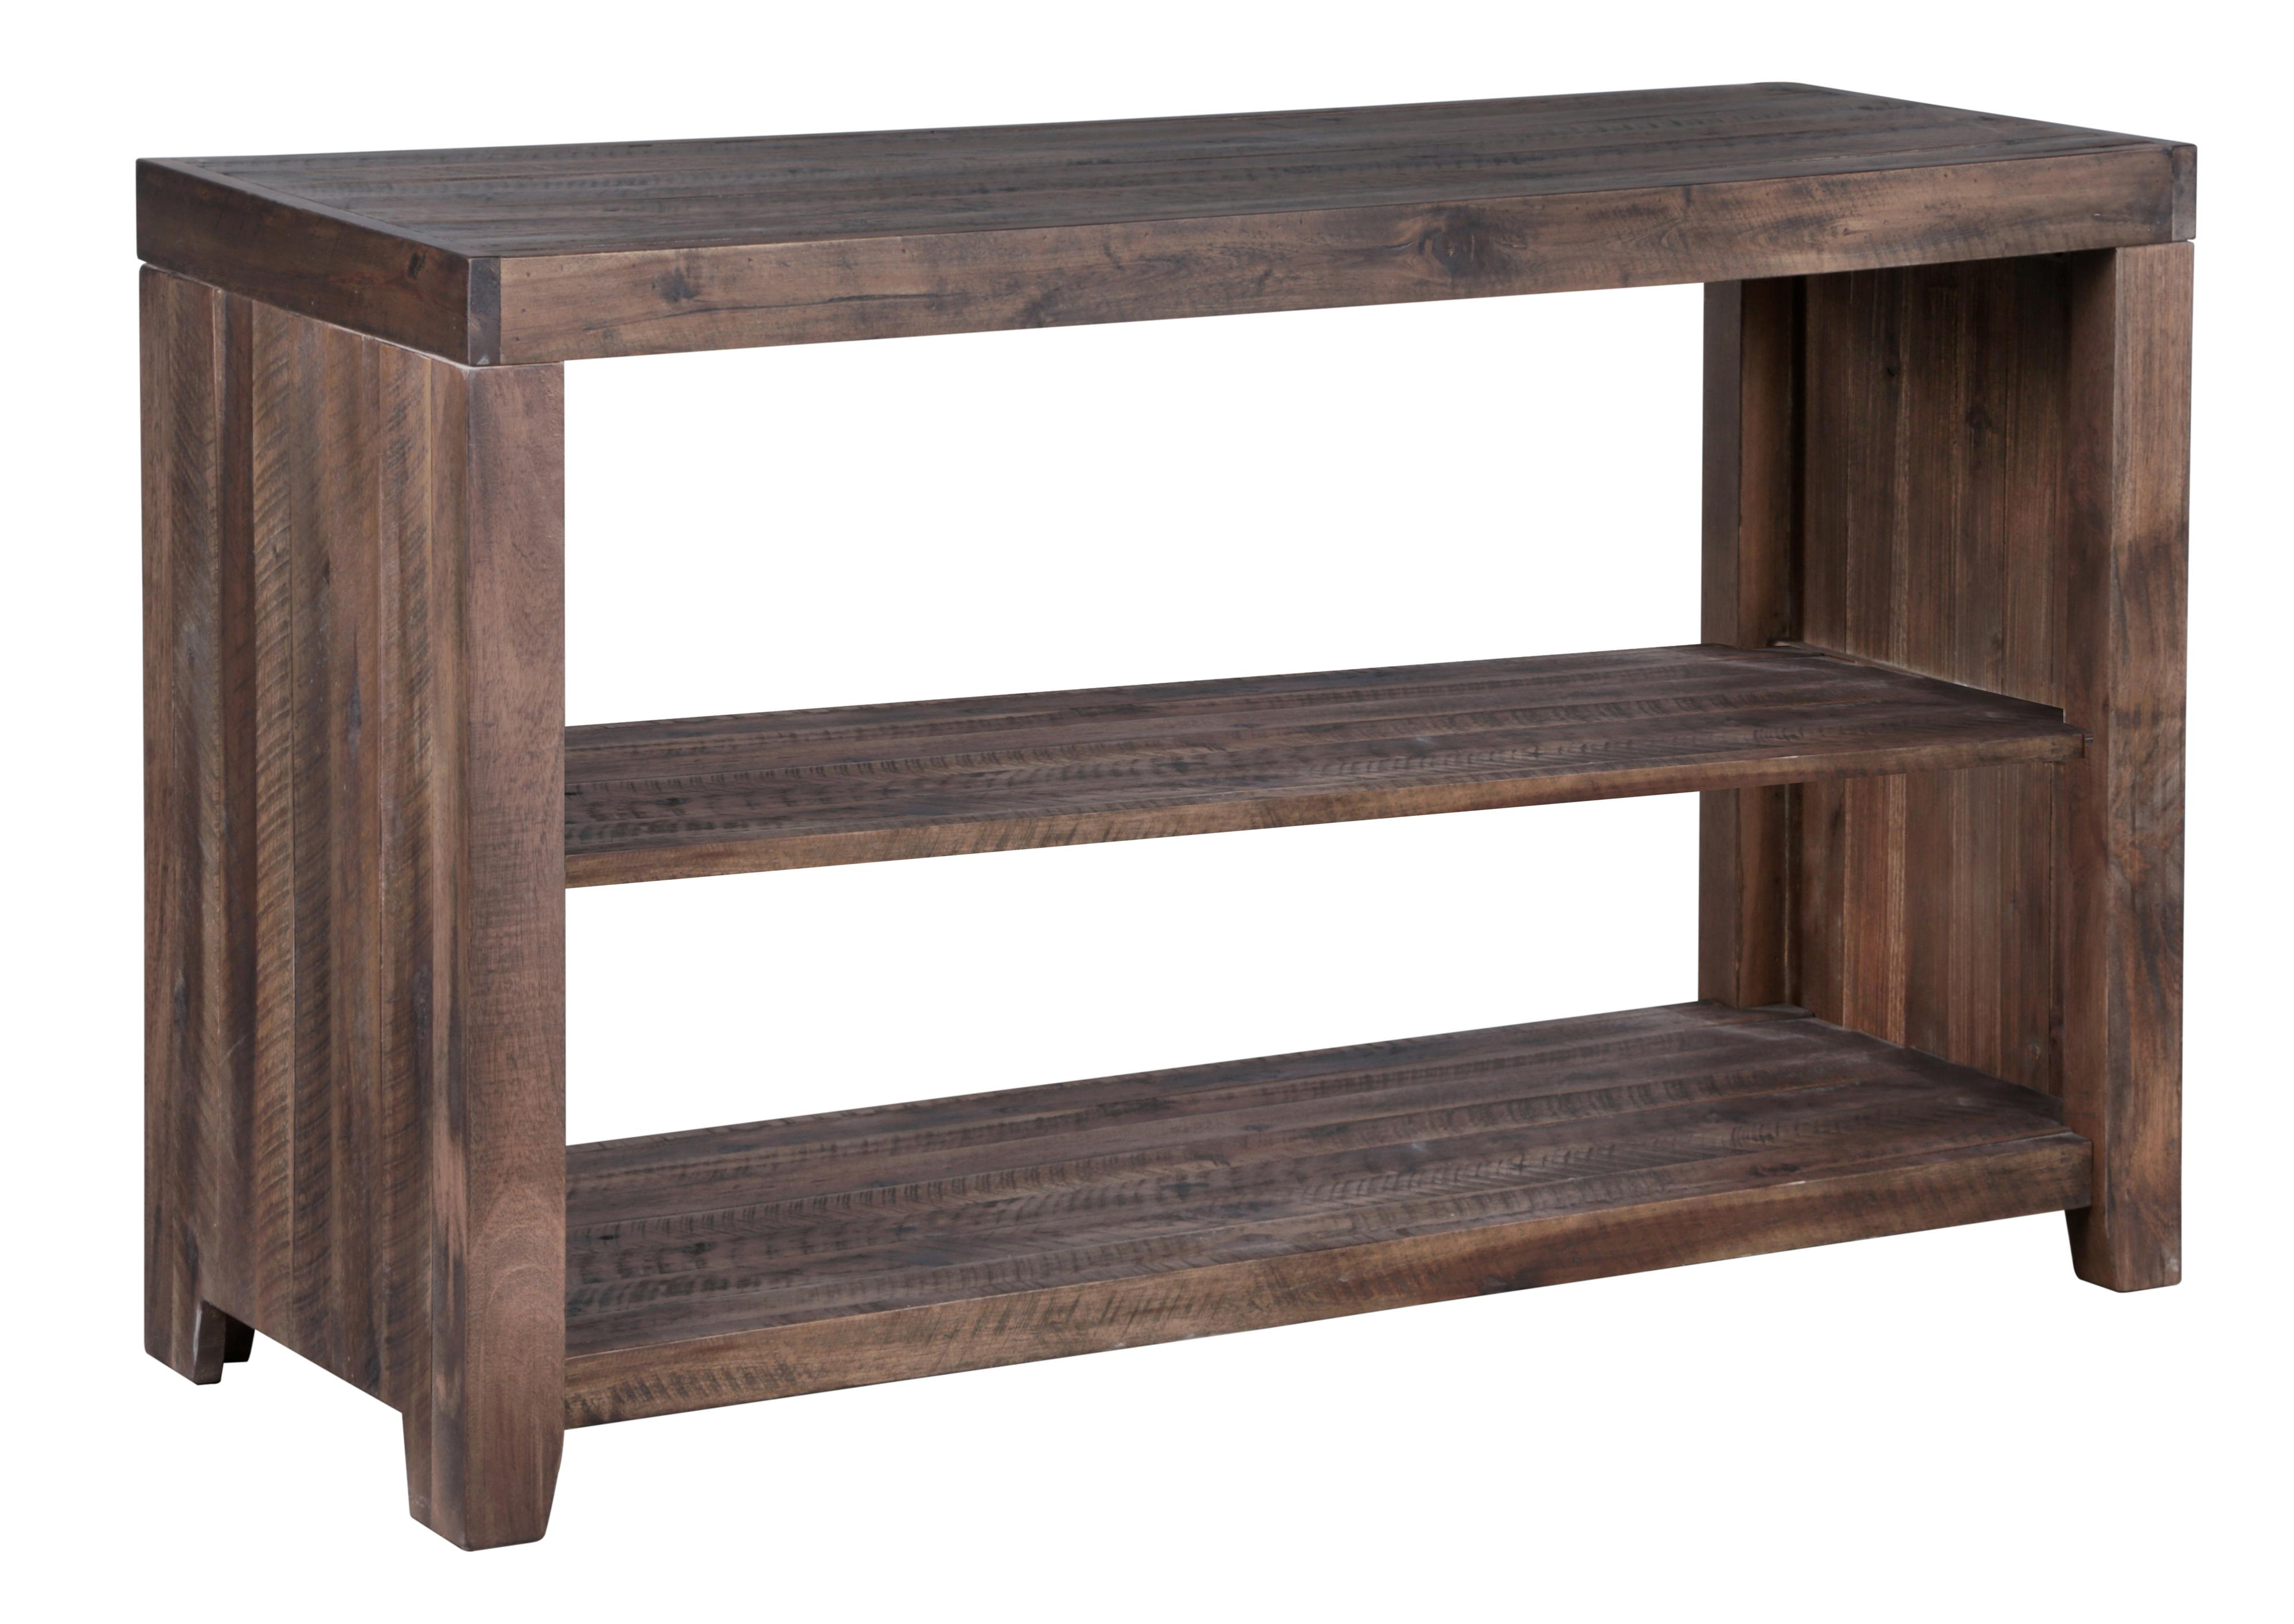 rustic rectangular sofa table with two shelves by magnussen home